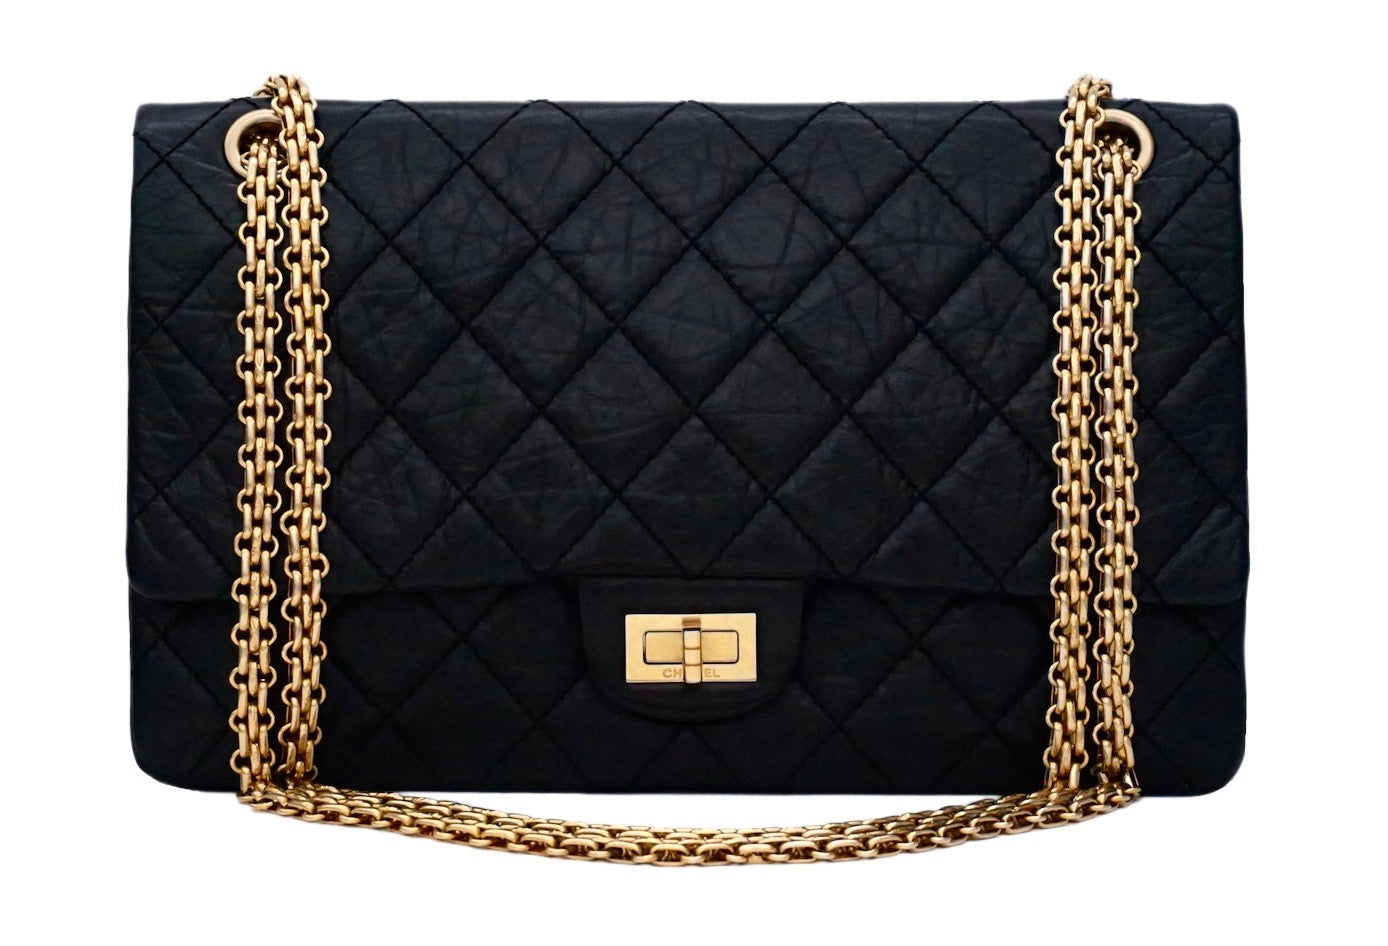 921a43a2cf7b Authentic Chanel Black Crinkled Calfskin 2.55 Reissue 226 Double Flap –  Classic Coco Authentic Vintage Luxury